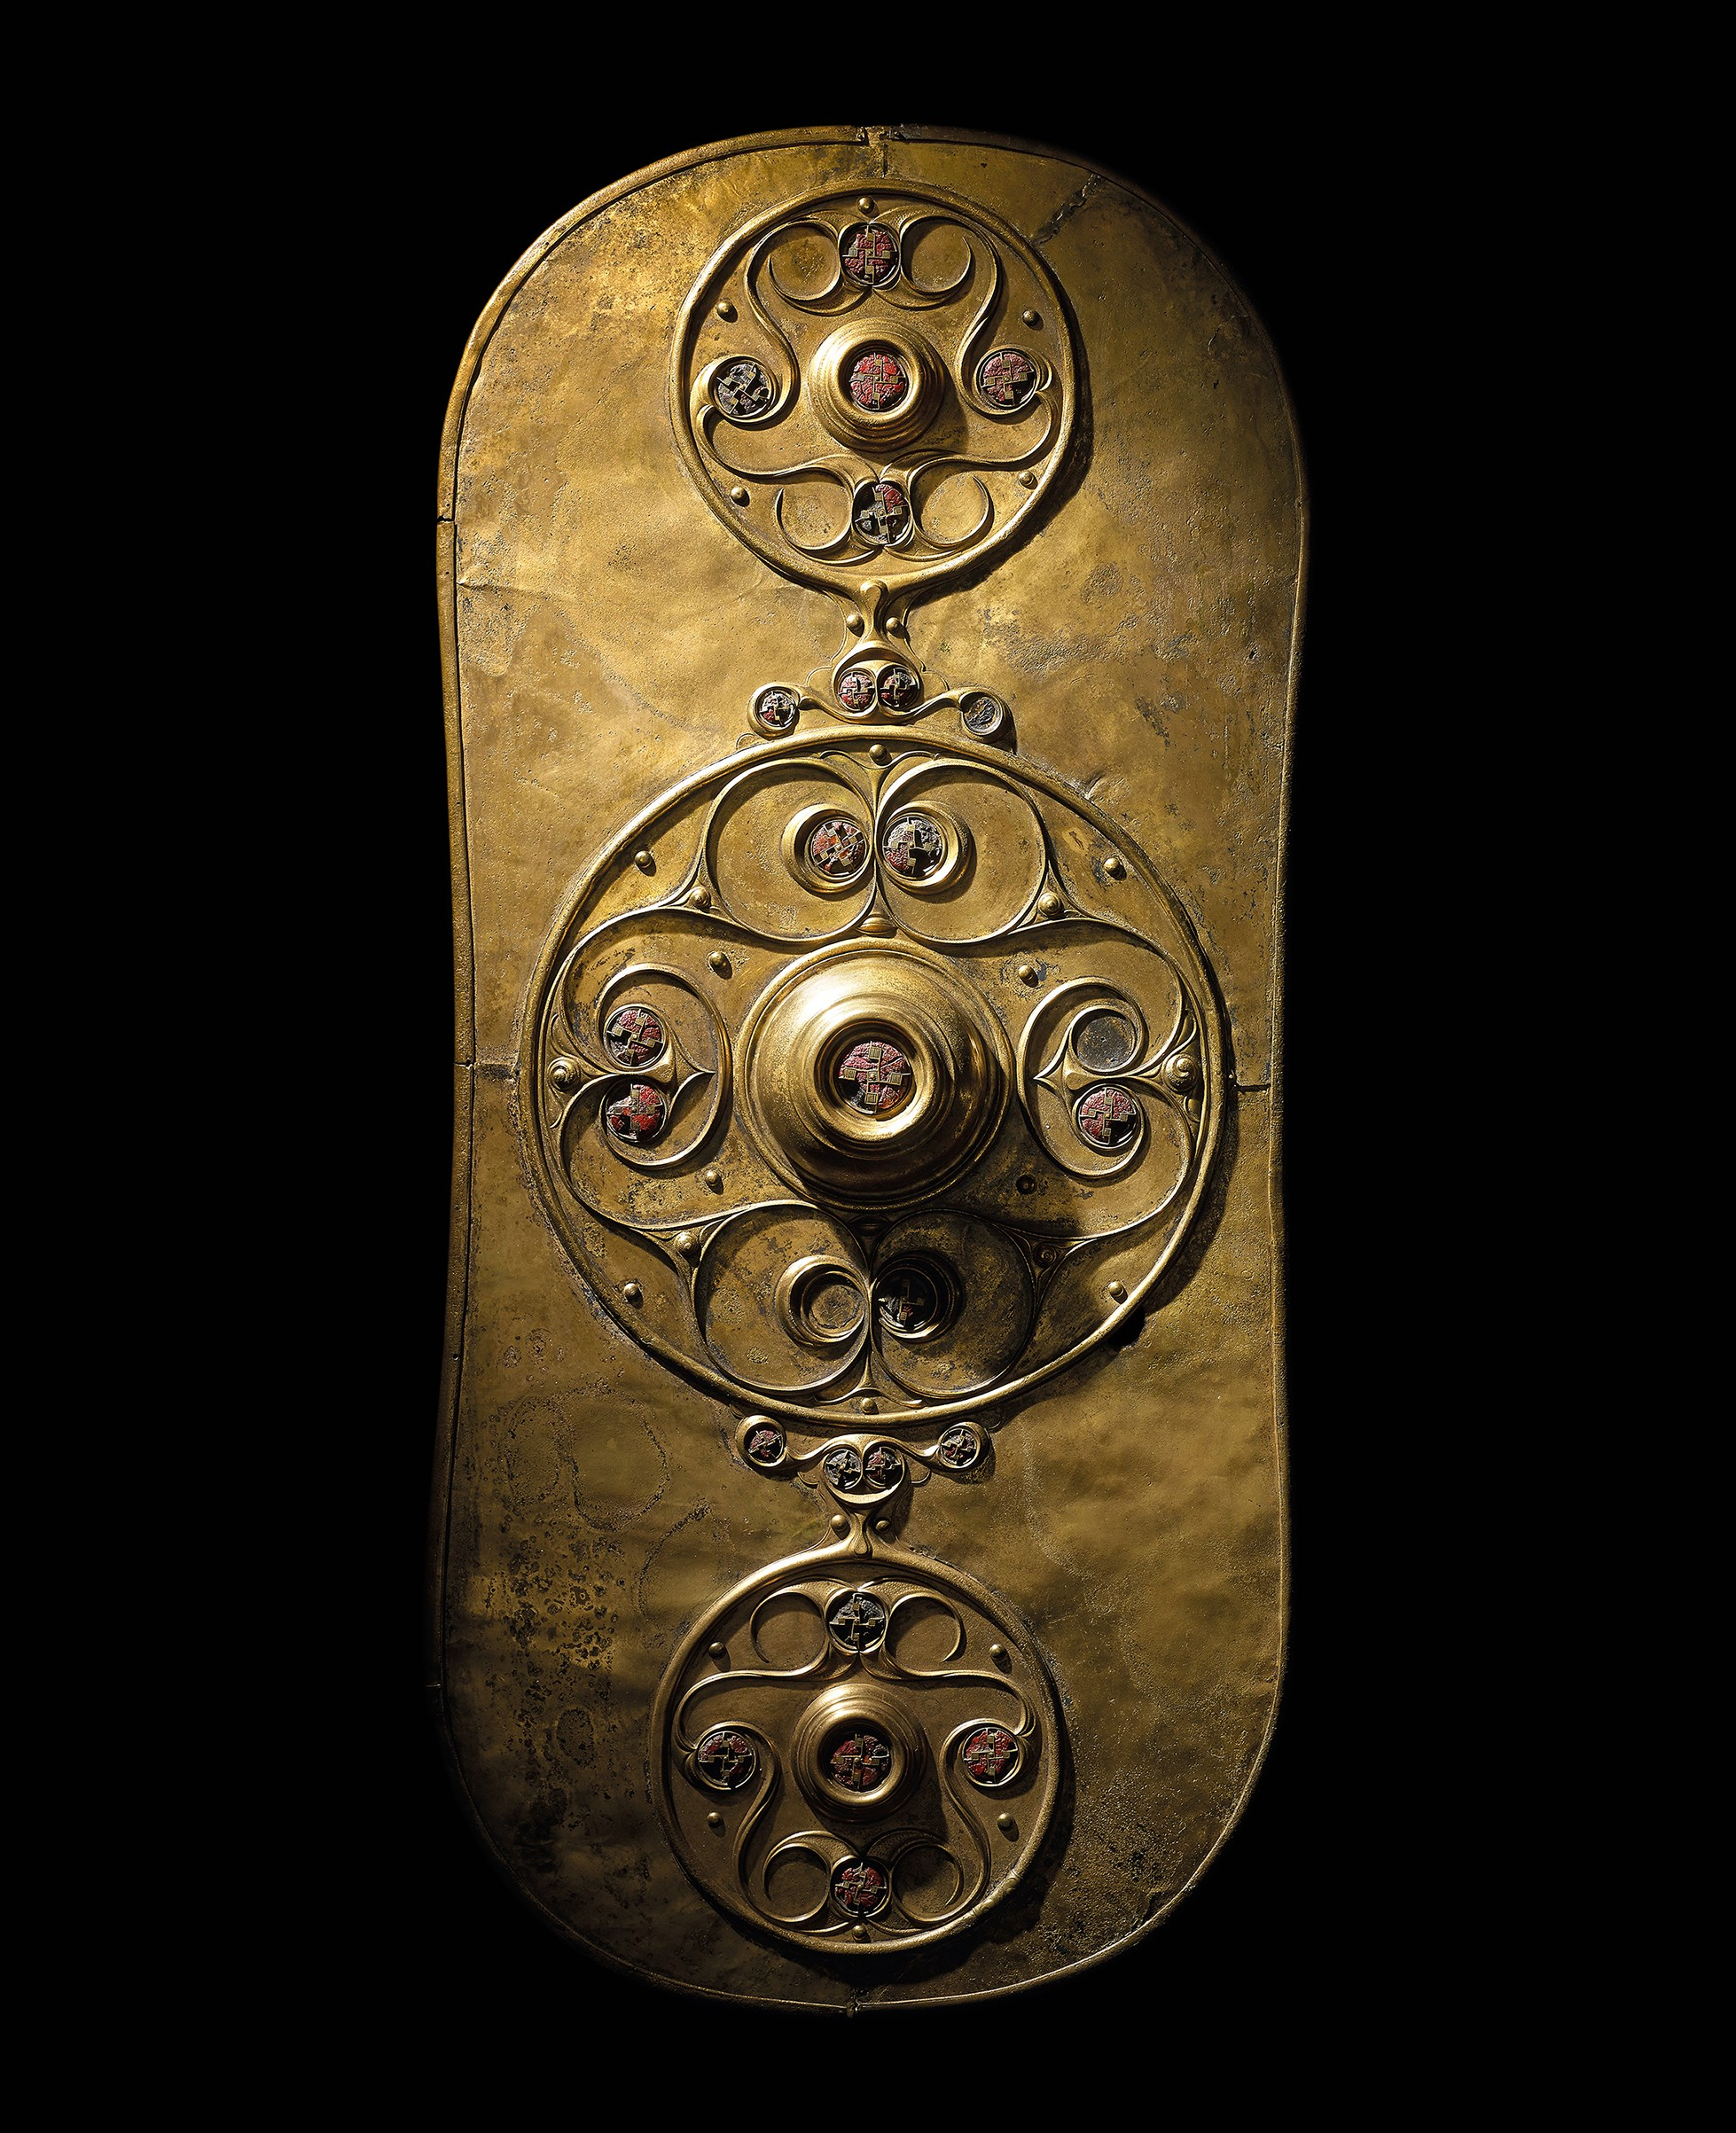 The Battersea shield. Iron Age, c. 350–50 BC. Found in the River Thames, London, England. © The Trustees of the British Museum.